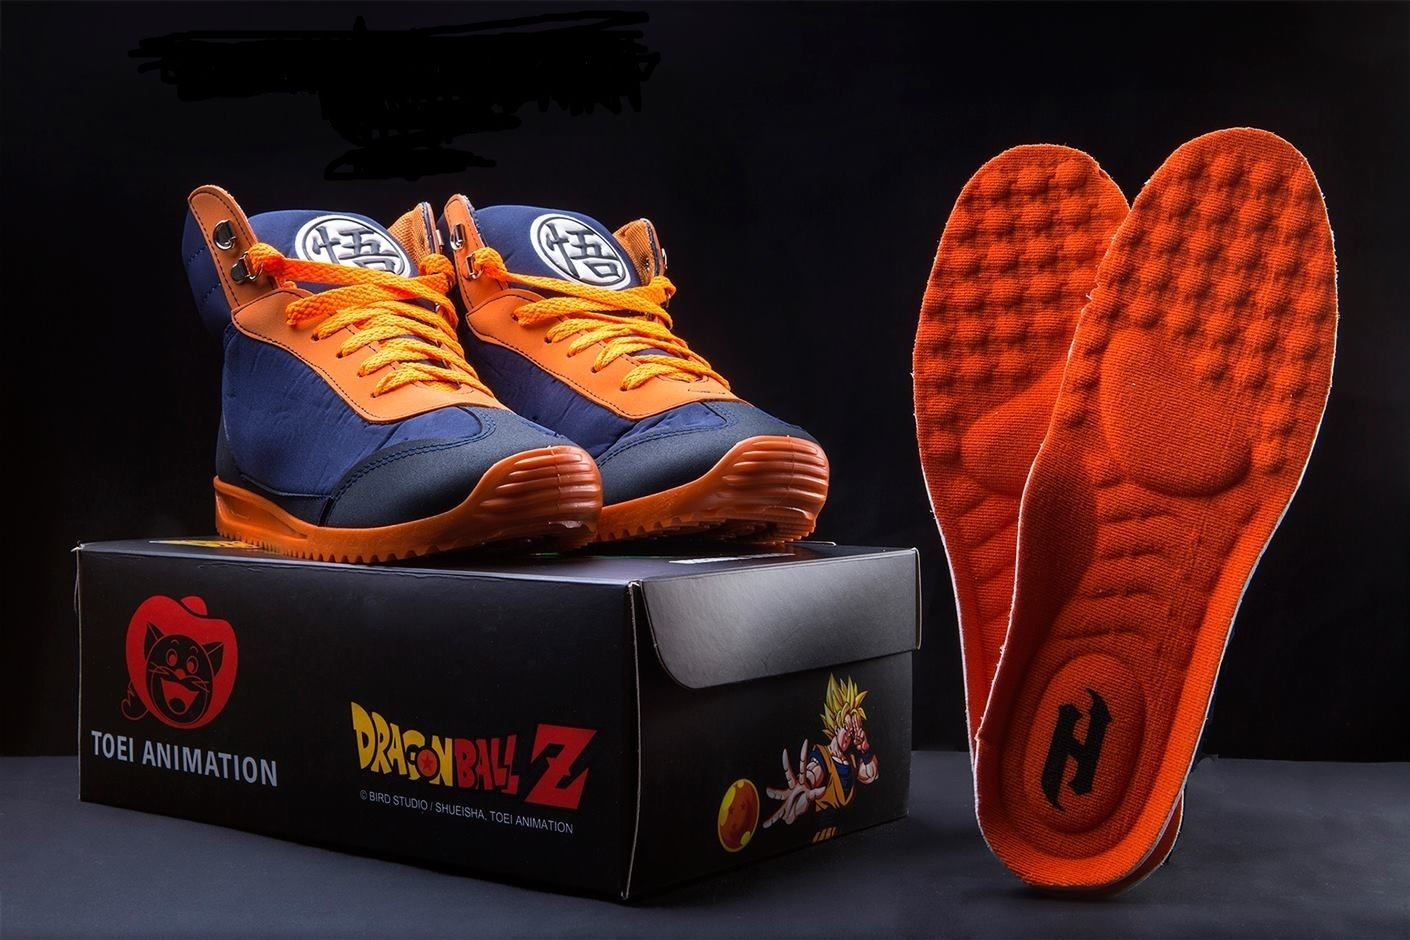 Dragon Ball Z Sneakers | Sole Collector